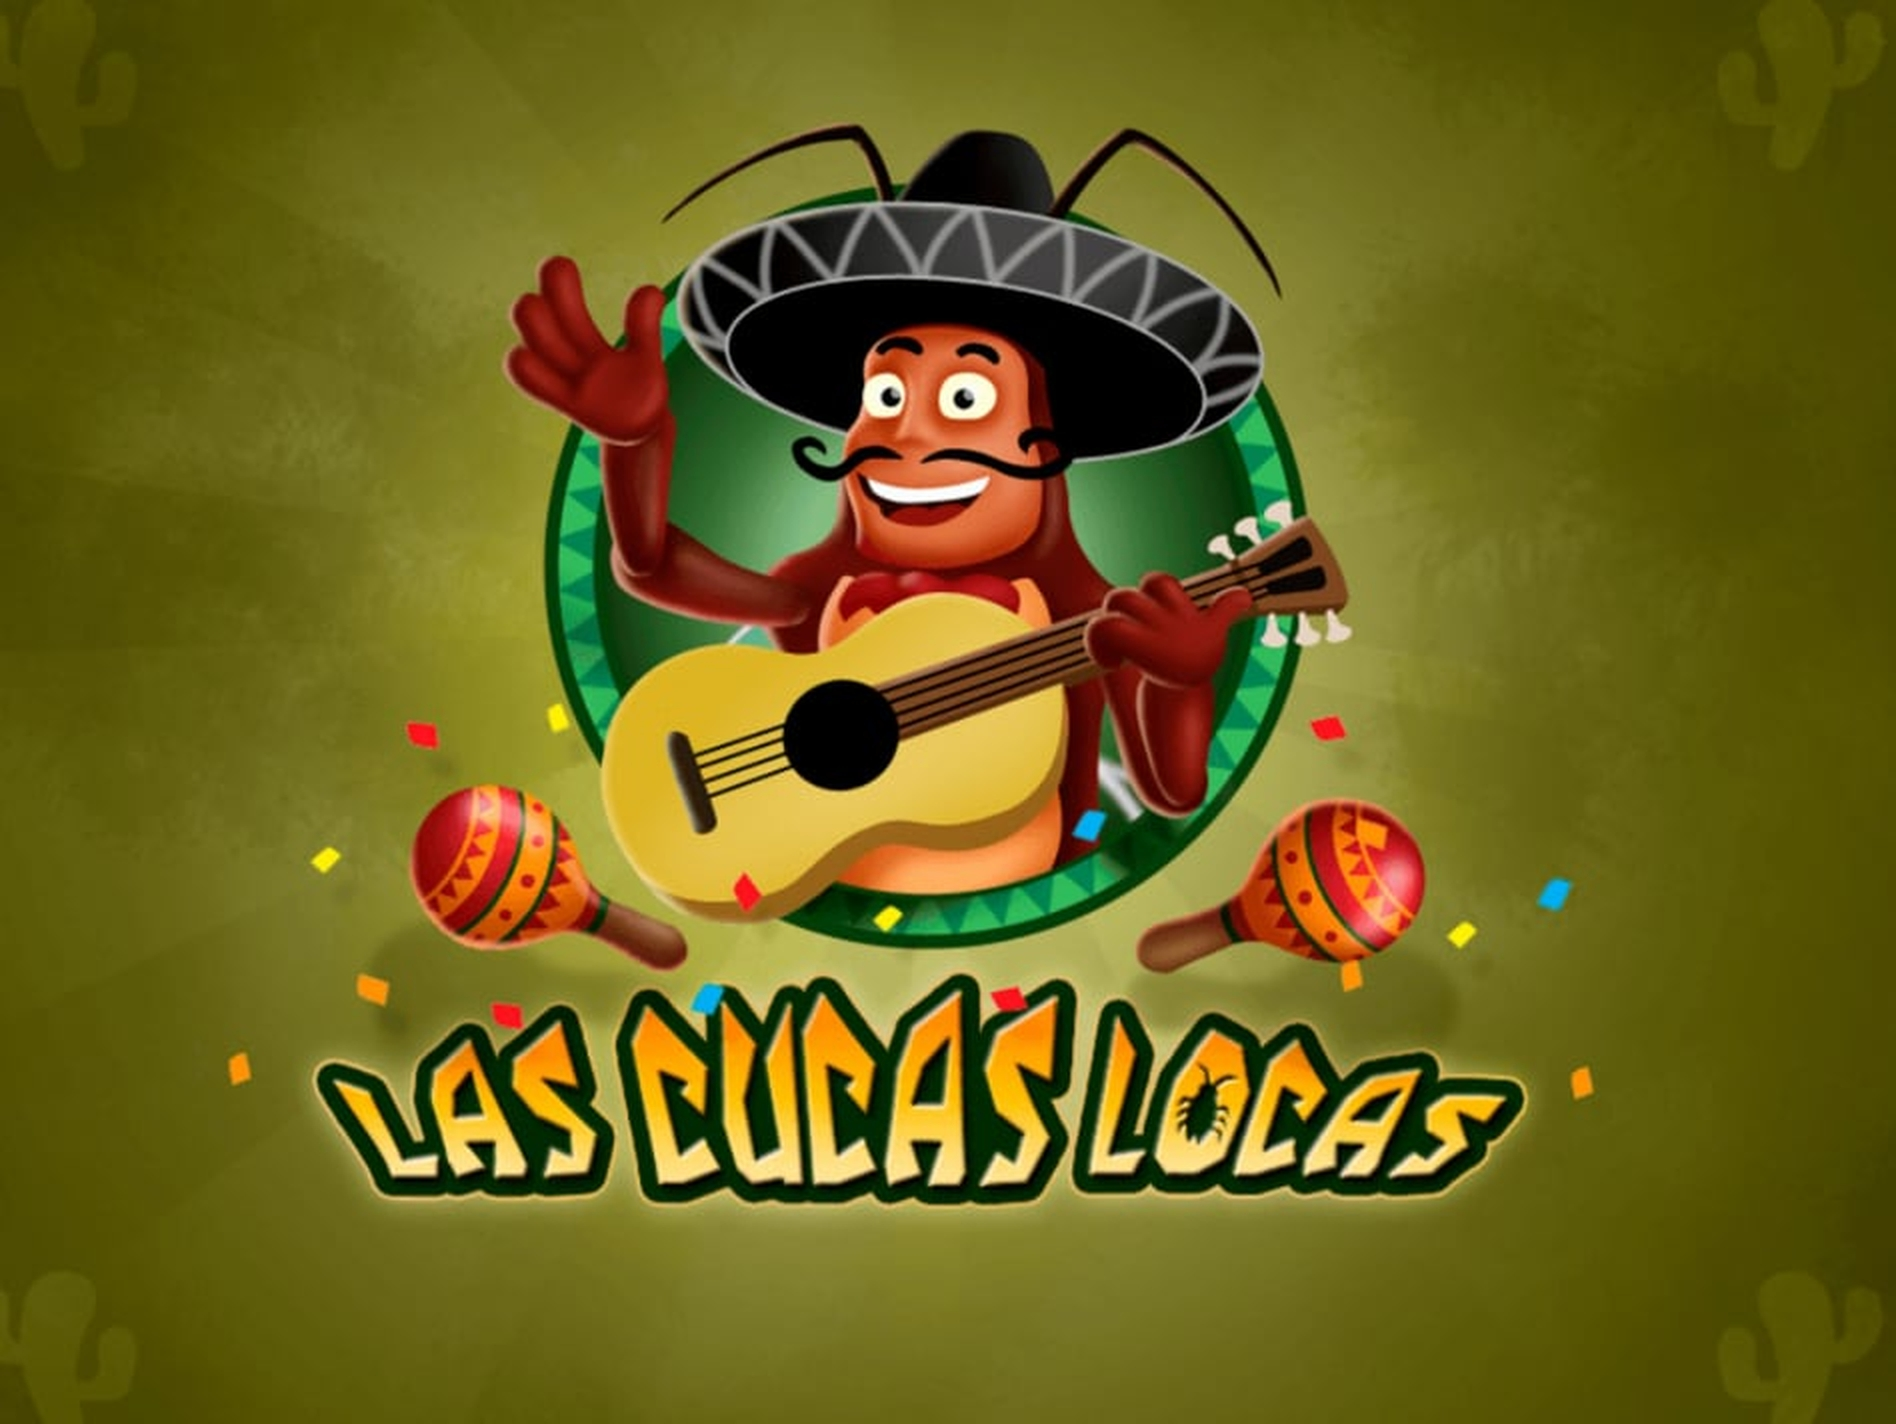 The Las Cucas Locas Online Slot Demo Game by PariPlay